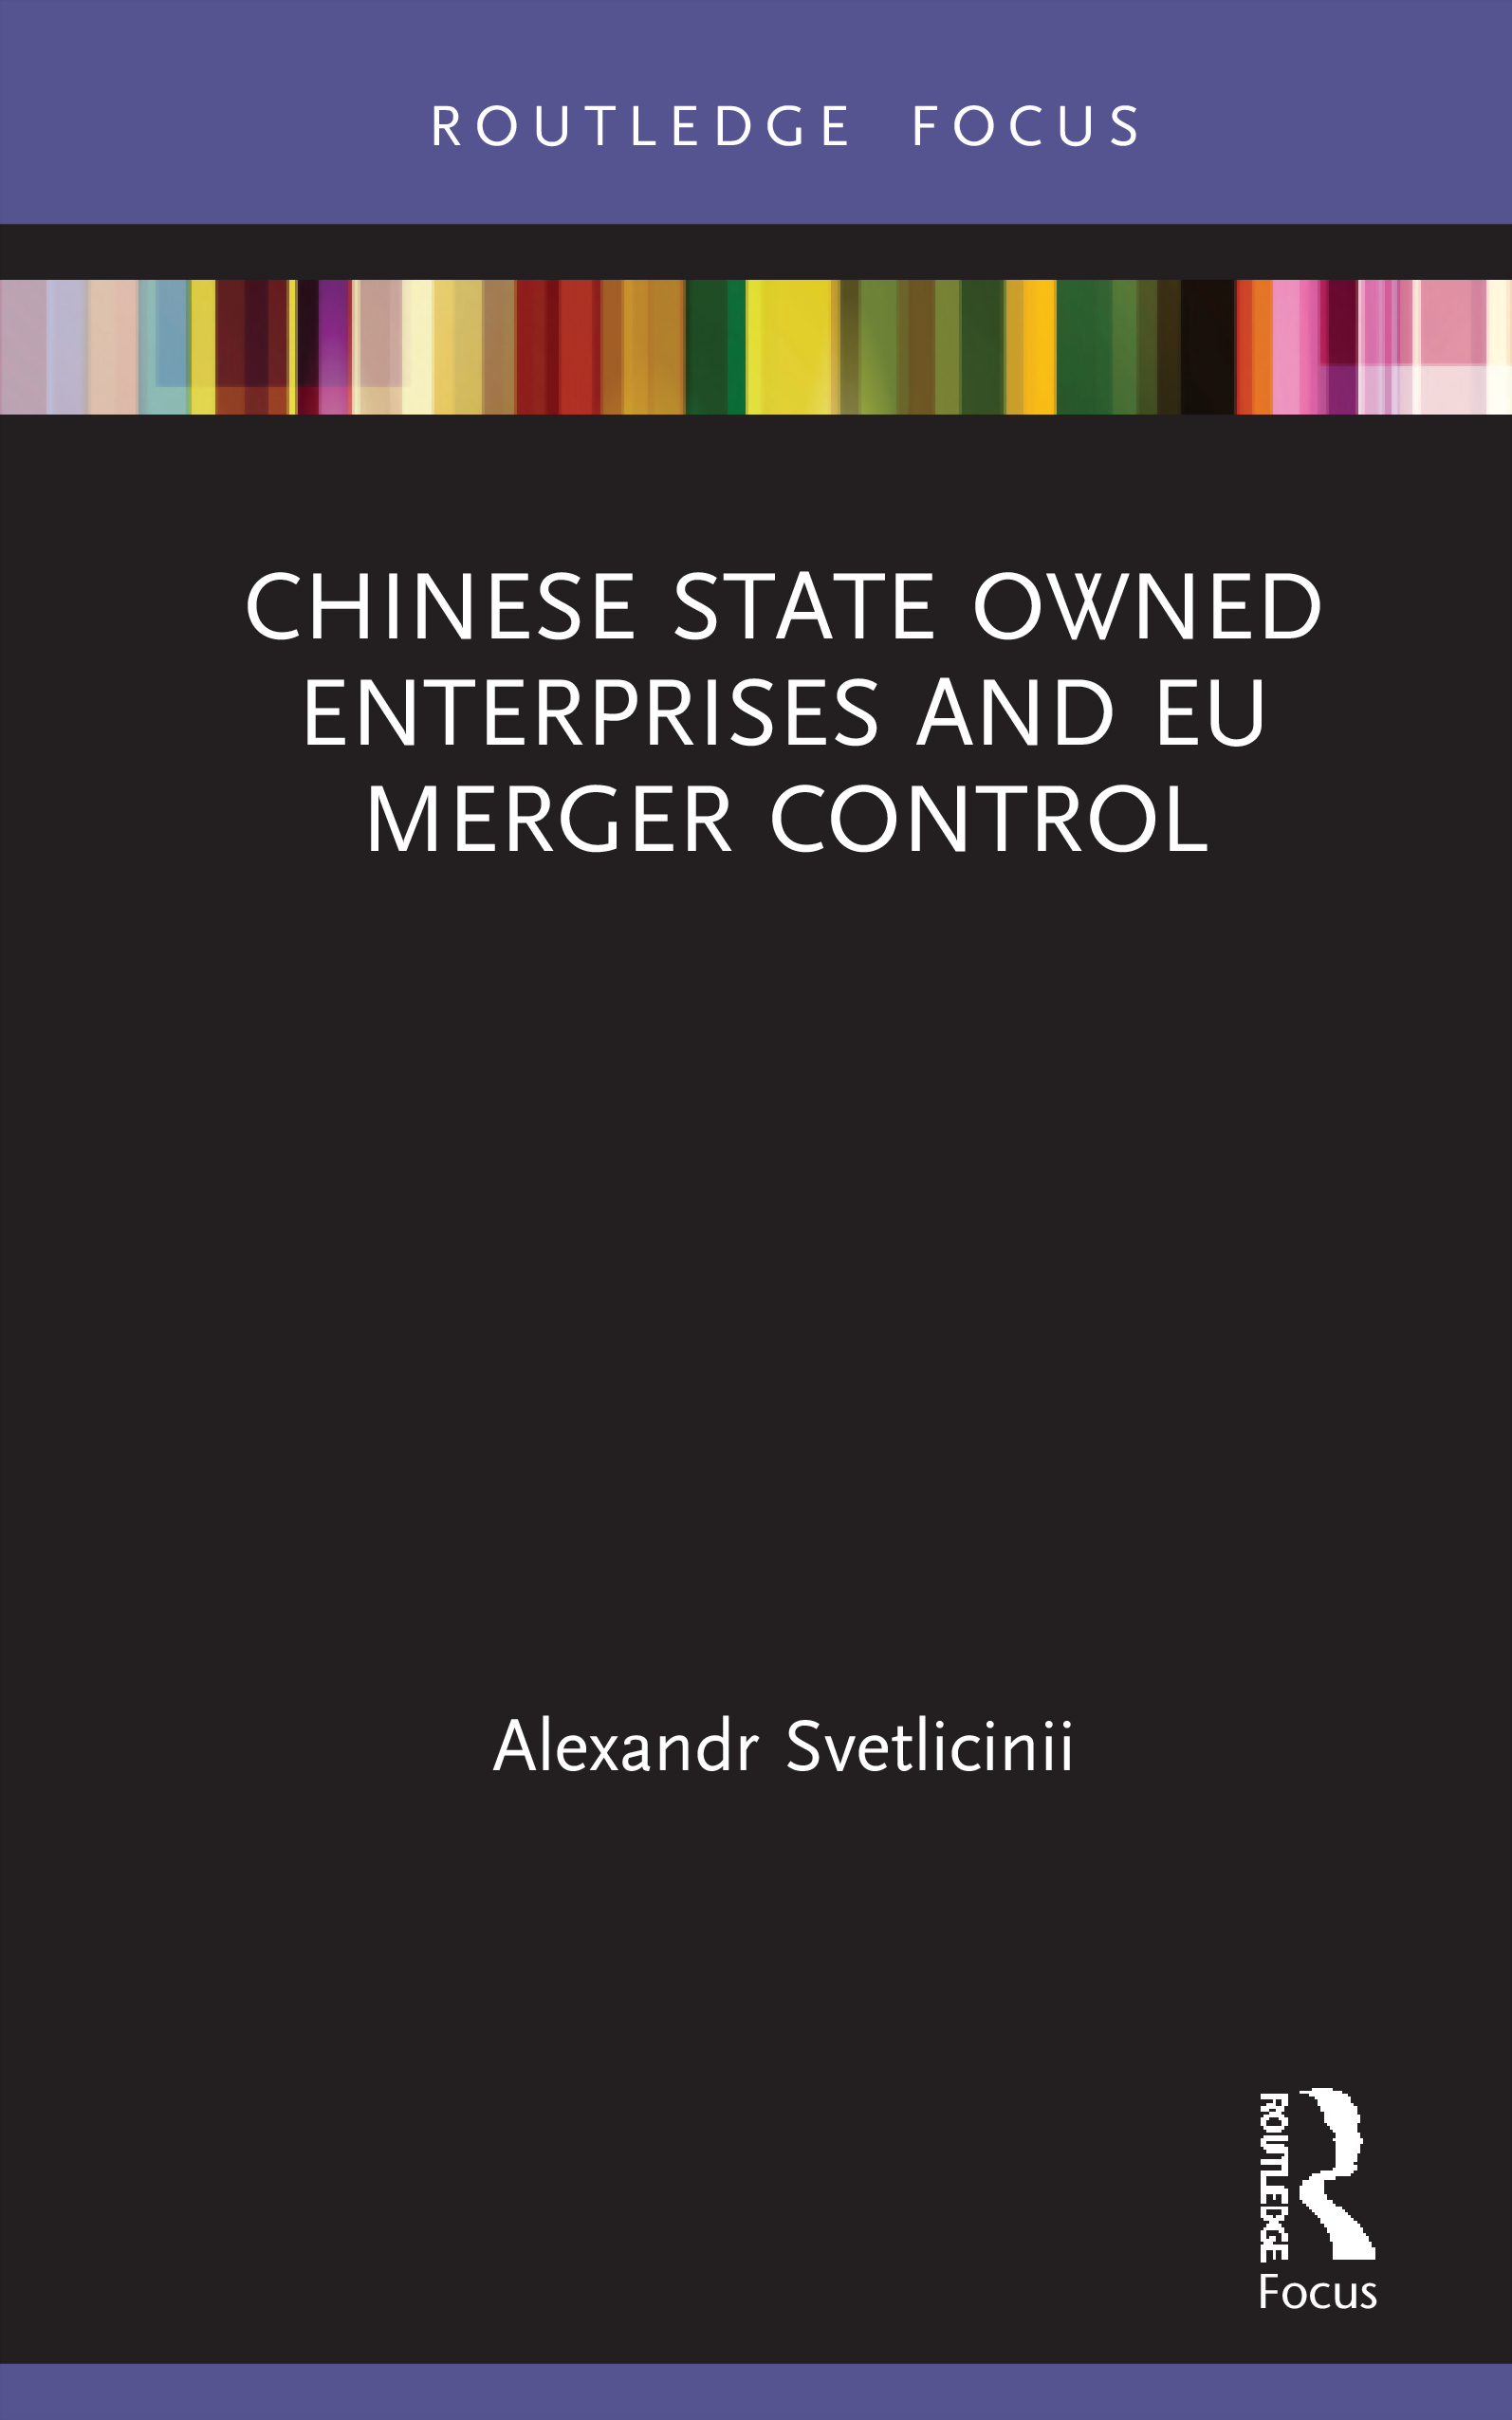 Chinese State Owned Enterprises and EU Merger Control